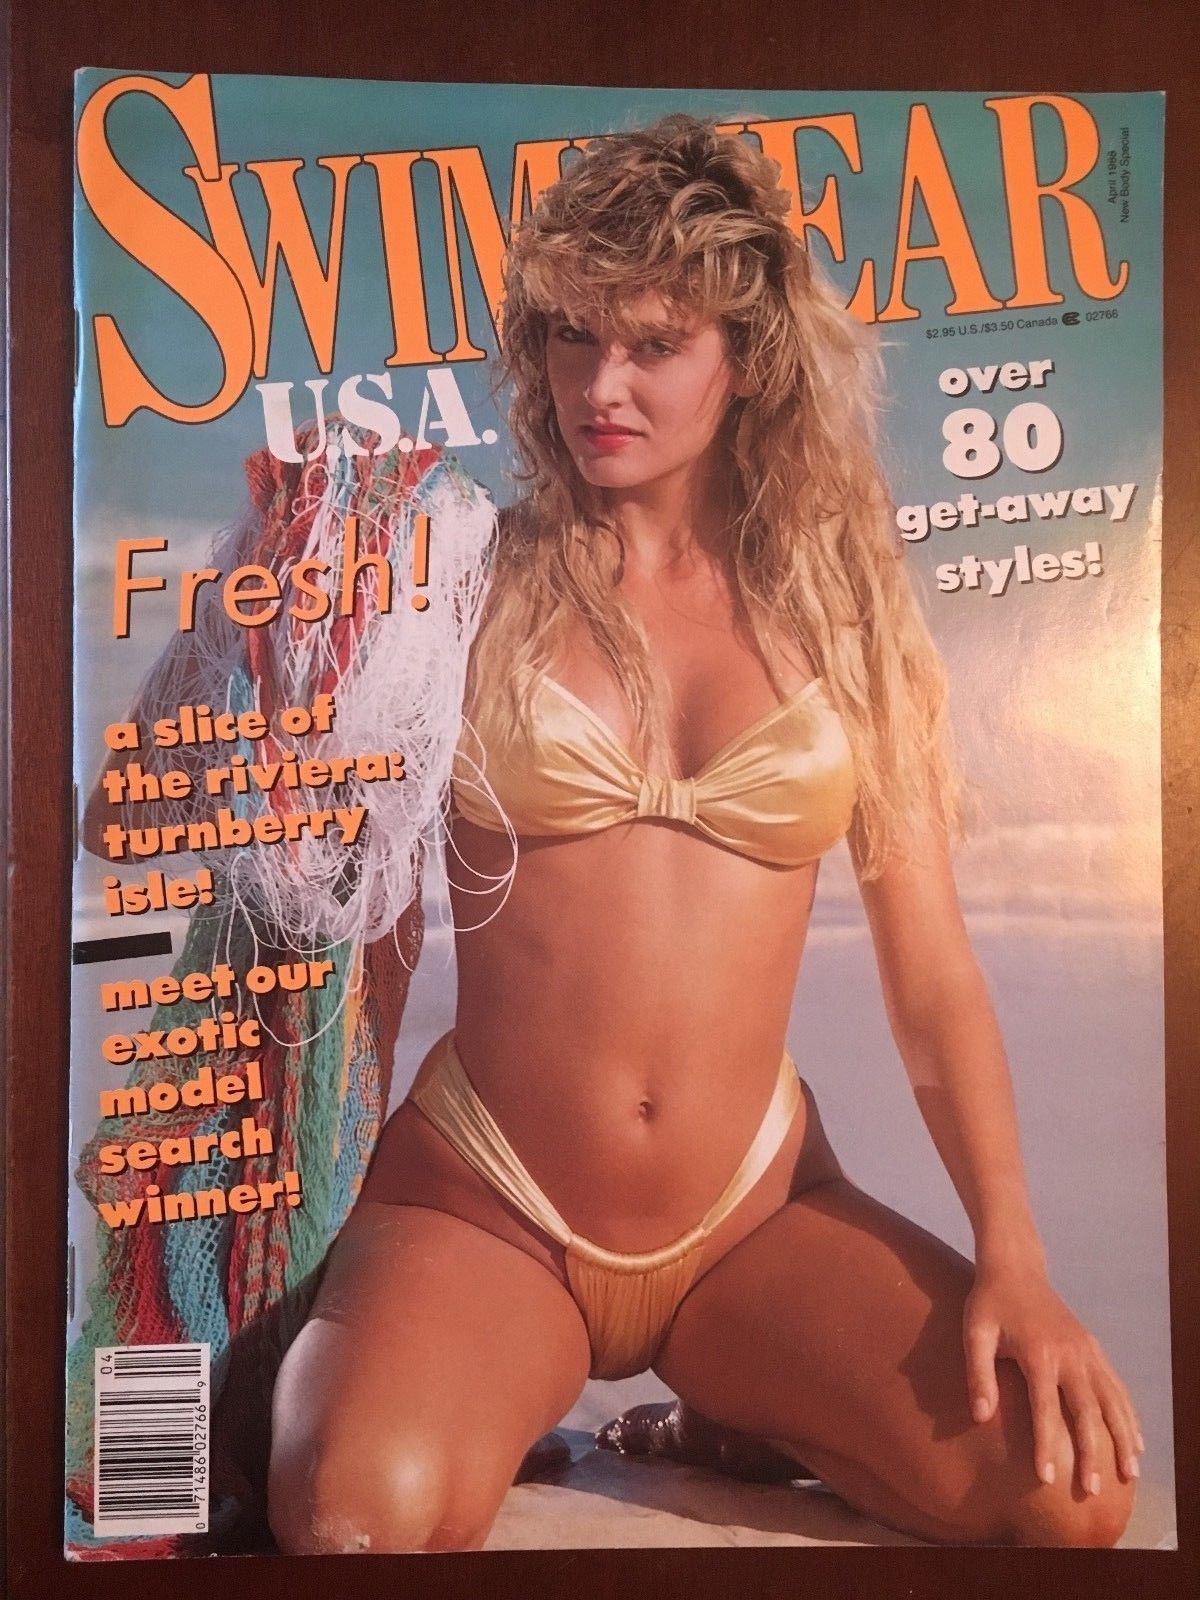 c435290ec9 April swimwear u a magazine swimsuit bikini models venus swimwear ebay jpg  1200x1600 Venus swimwear models 1988